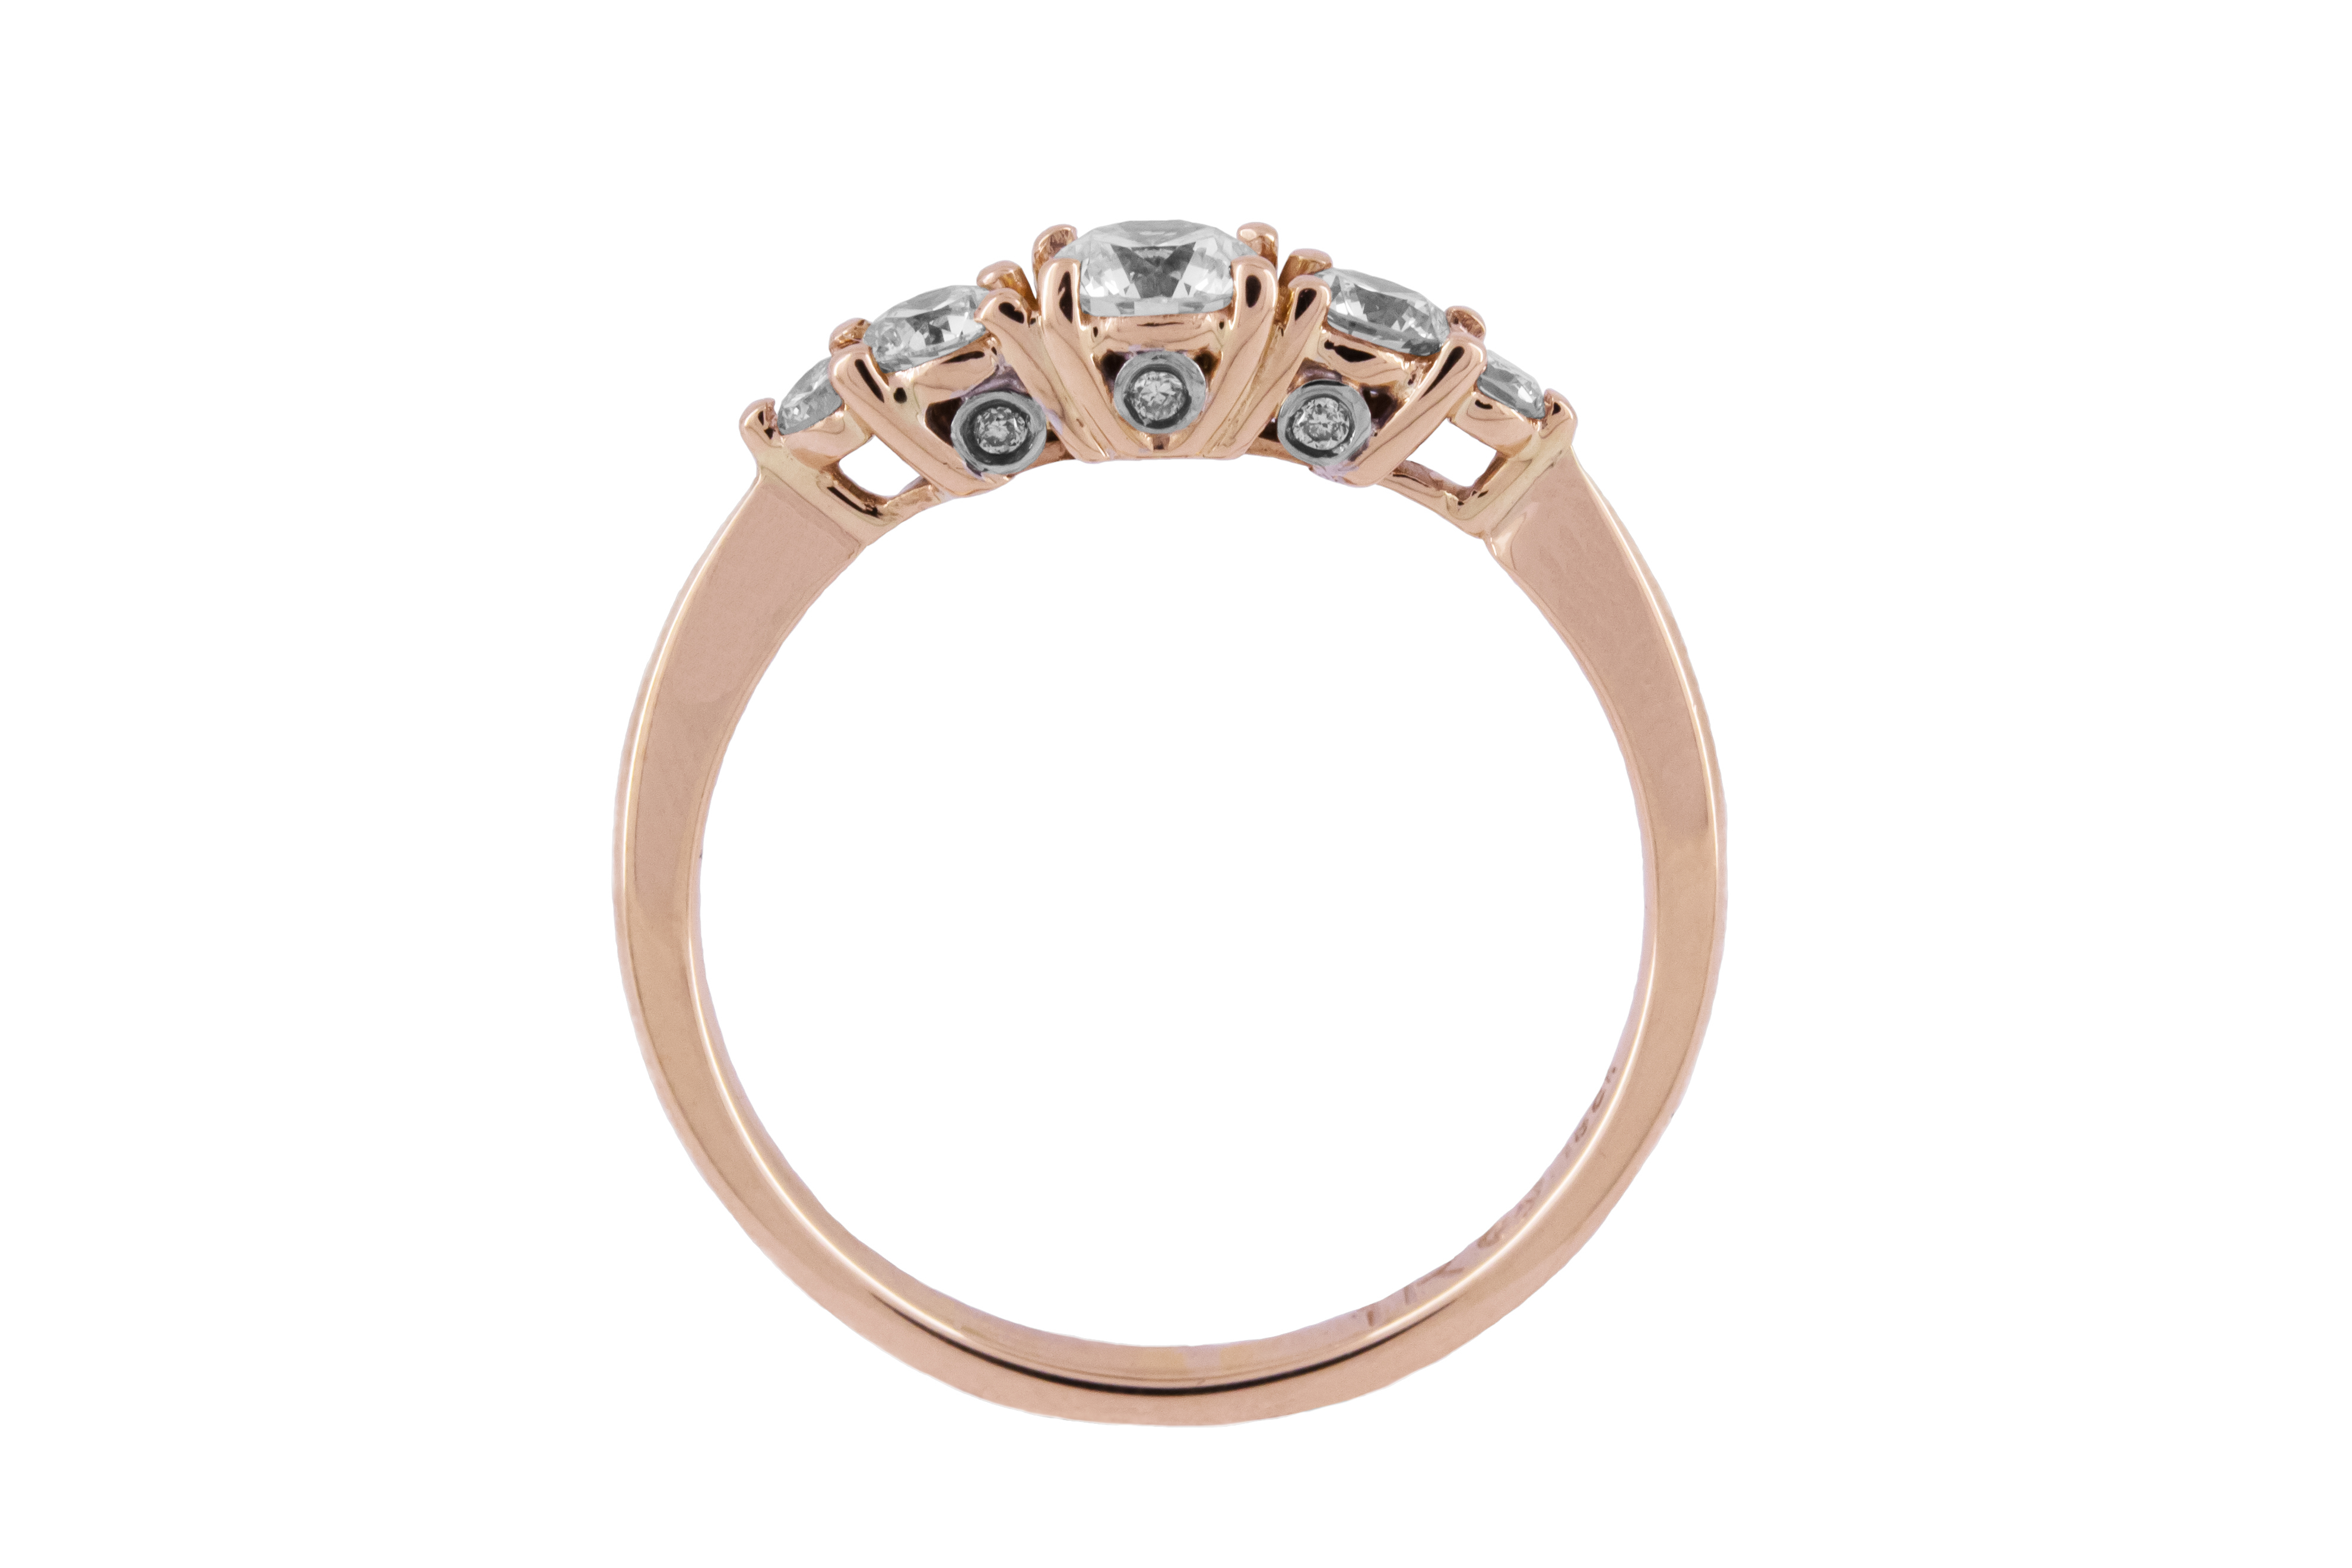 5 Stone Diamond Ring in 18ct Rose Gold